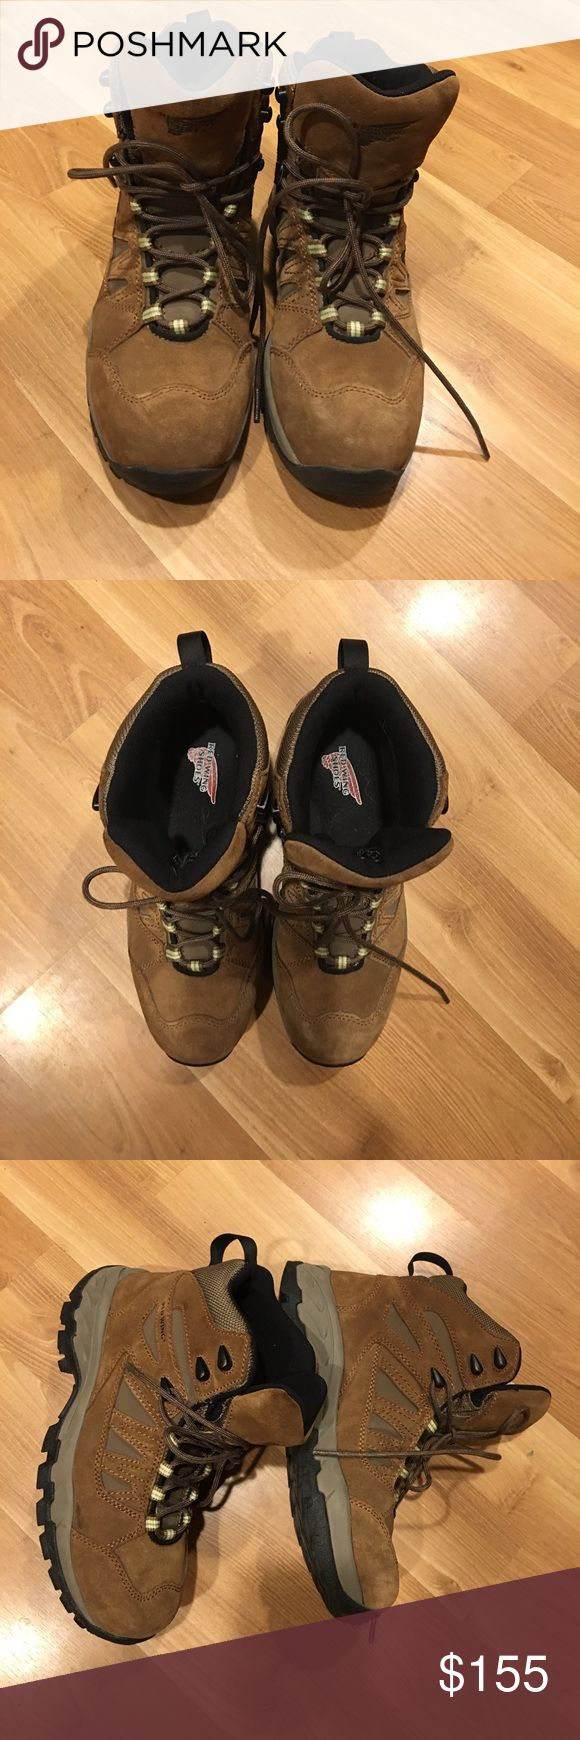 Red Wing hiking boots size 8.5 Waterproof Nubuck Brown Leather Cement Construction Steel Shank Removable EVA Footbed Oil/Slip Resistant Rubber/EVA Xplorer Sole Care : Nubuck/Suede Cleaner Kit  Size 8.5 in very good used condition. I only worn it once. They are practically new. Bin#2 Red Wing Shoes Shoes Lace Up Boots